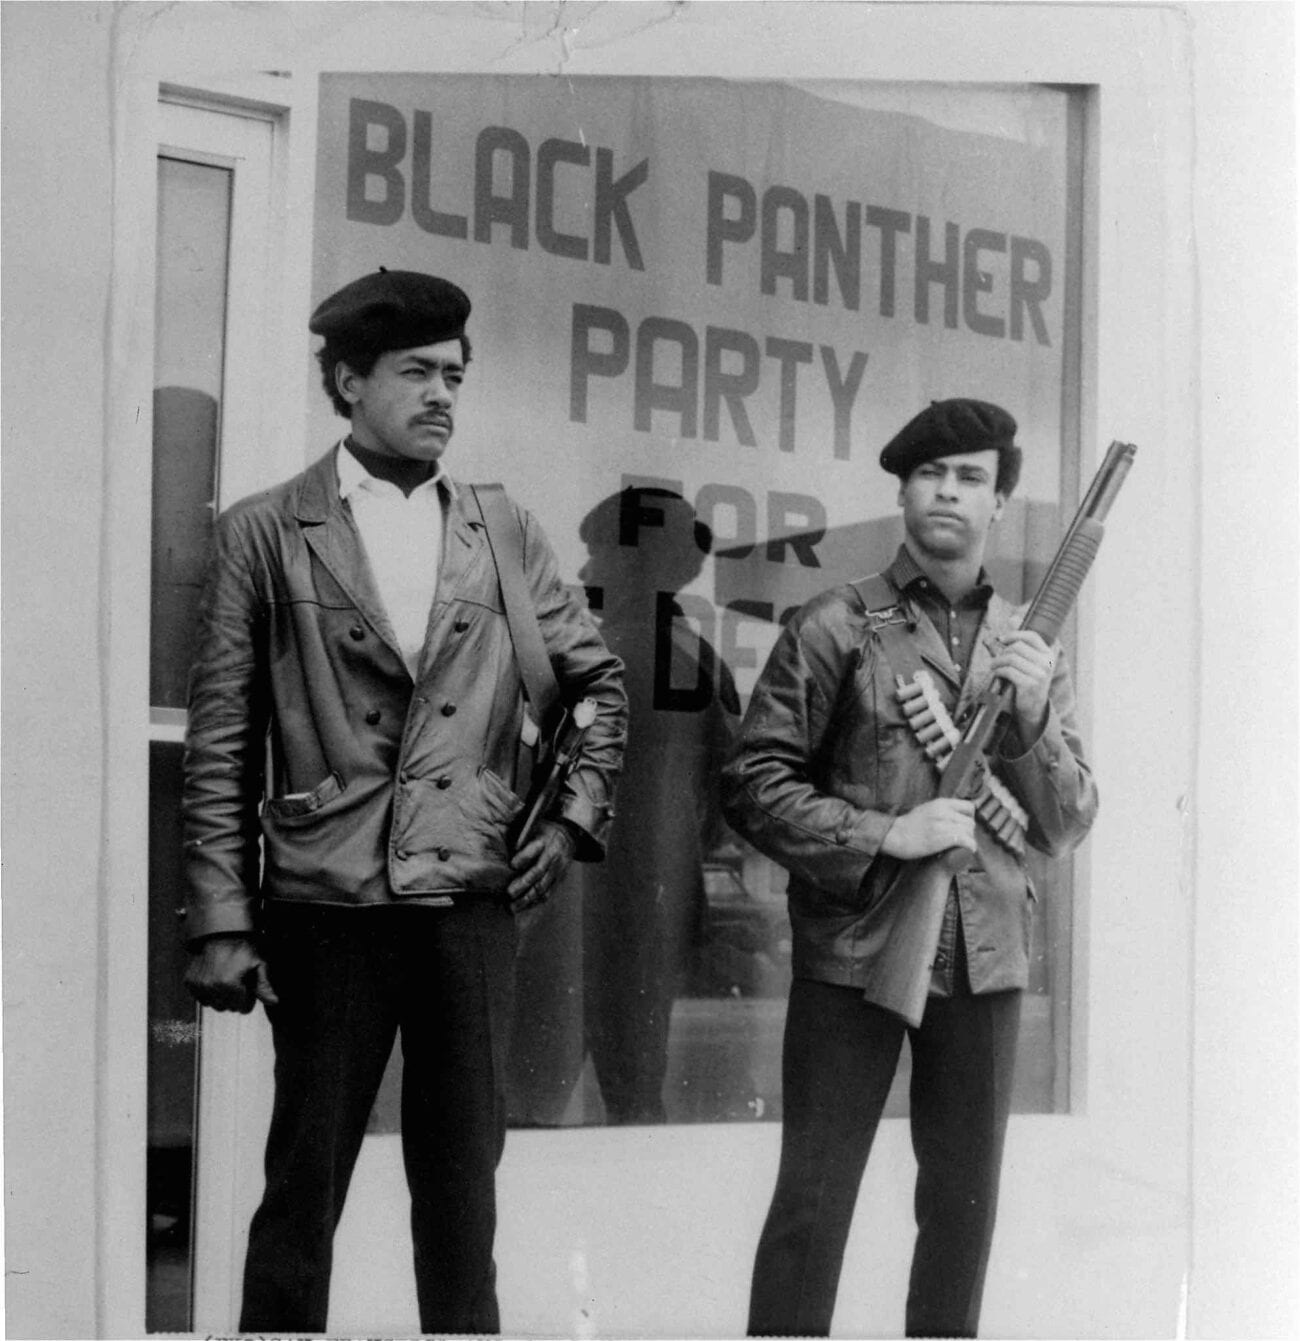 You've definitely heard of The Black Panther Party, but have you truly looked at the people behind the movement? You should know these names too.